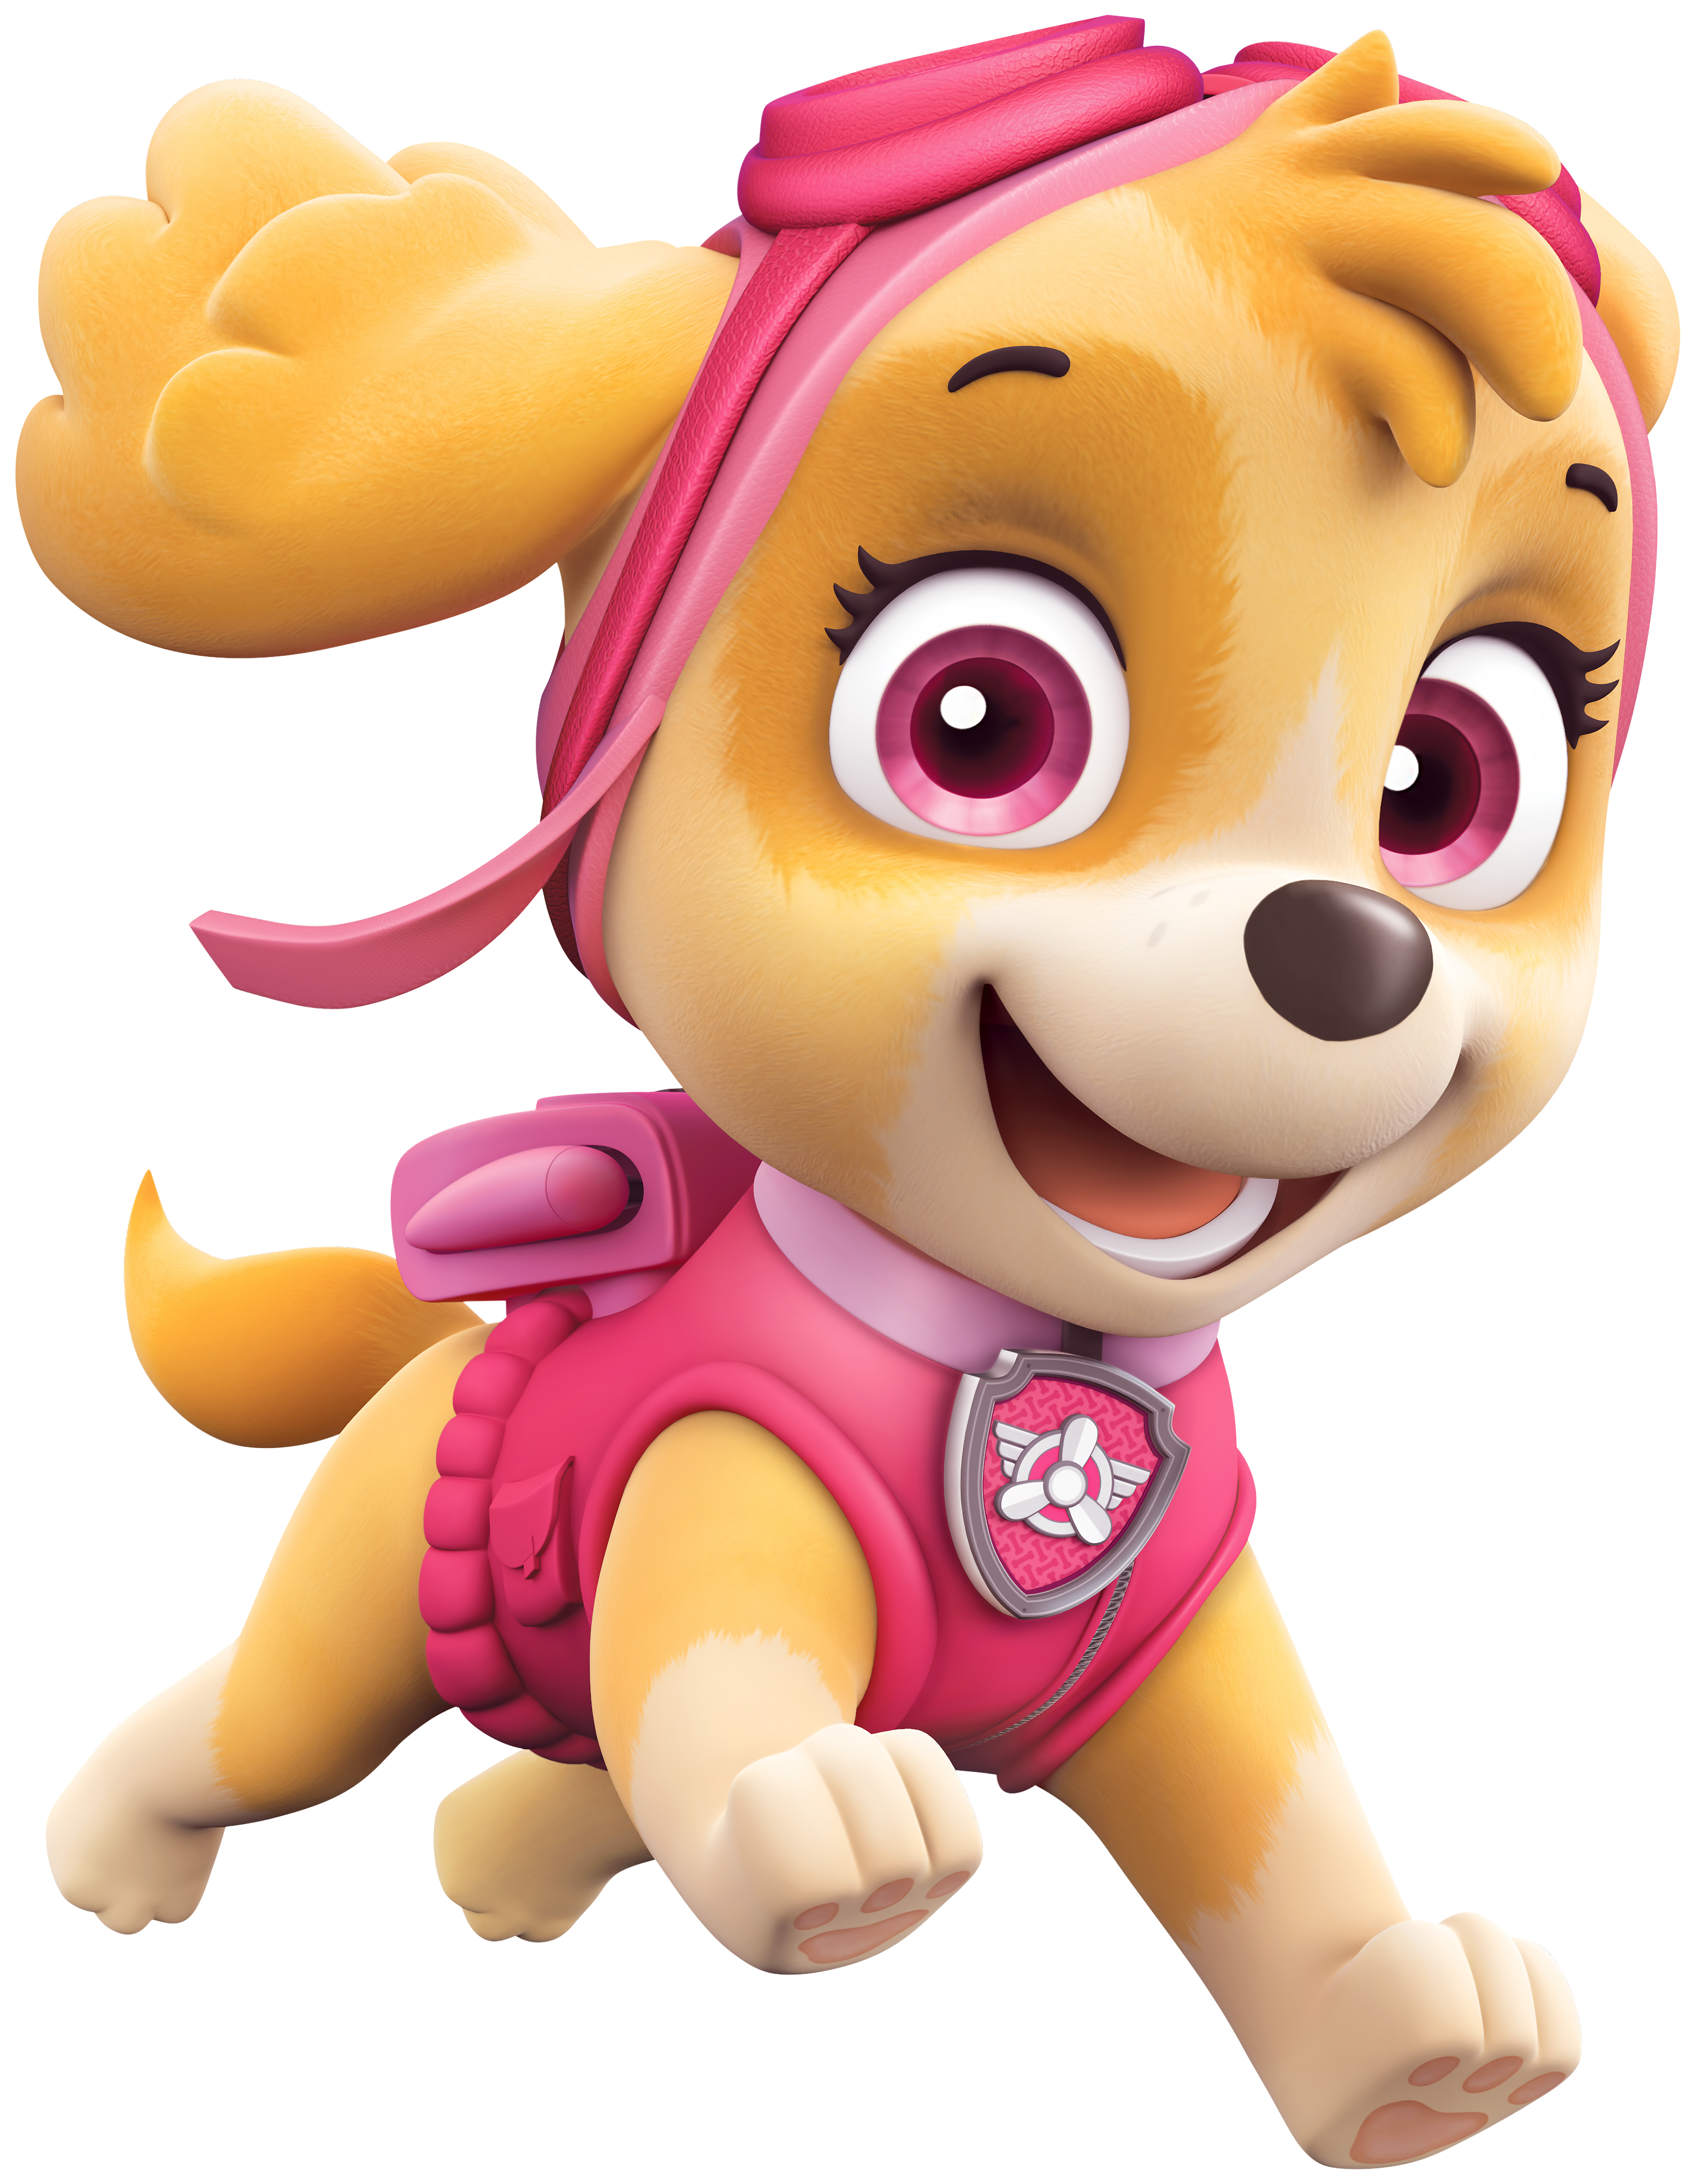 Paw Patrol Clipart images collection for free download.